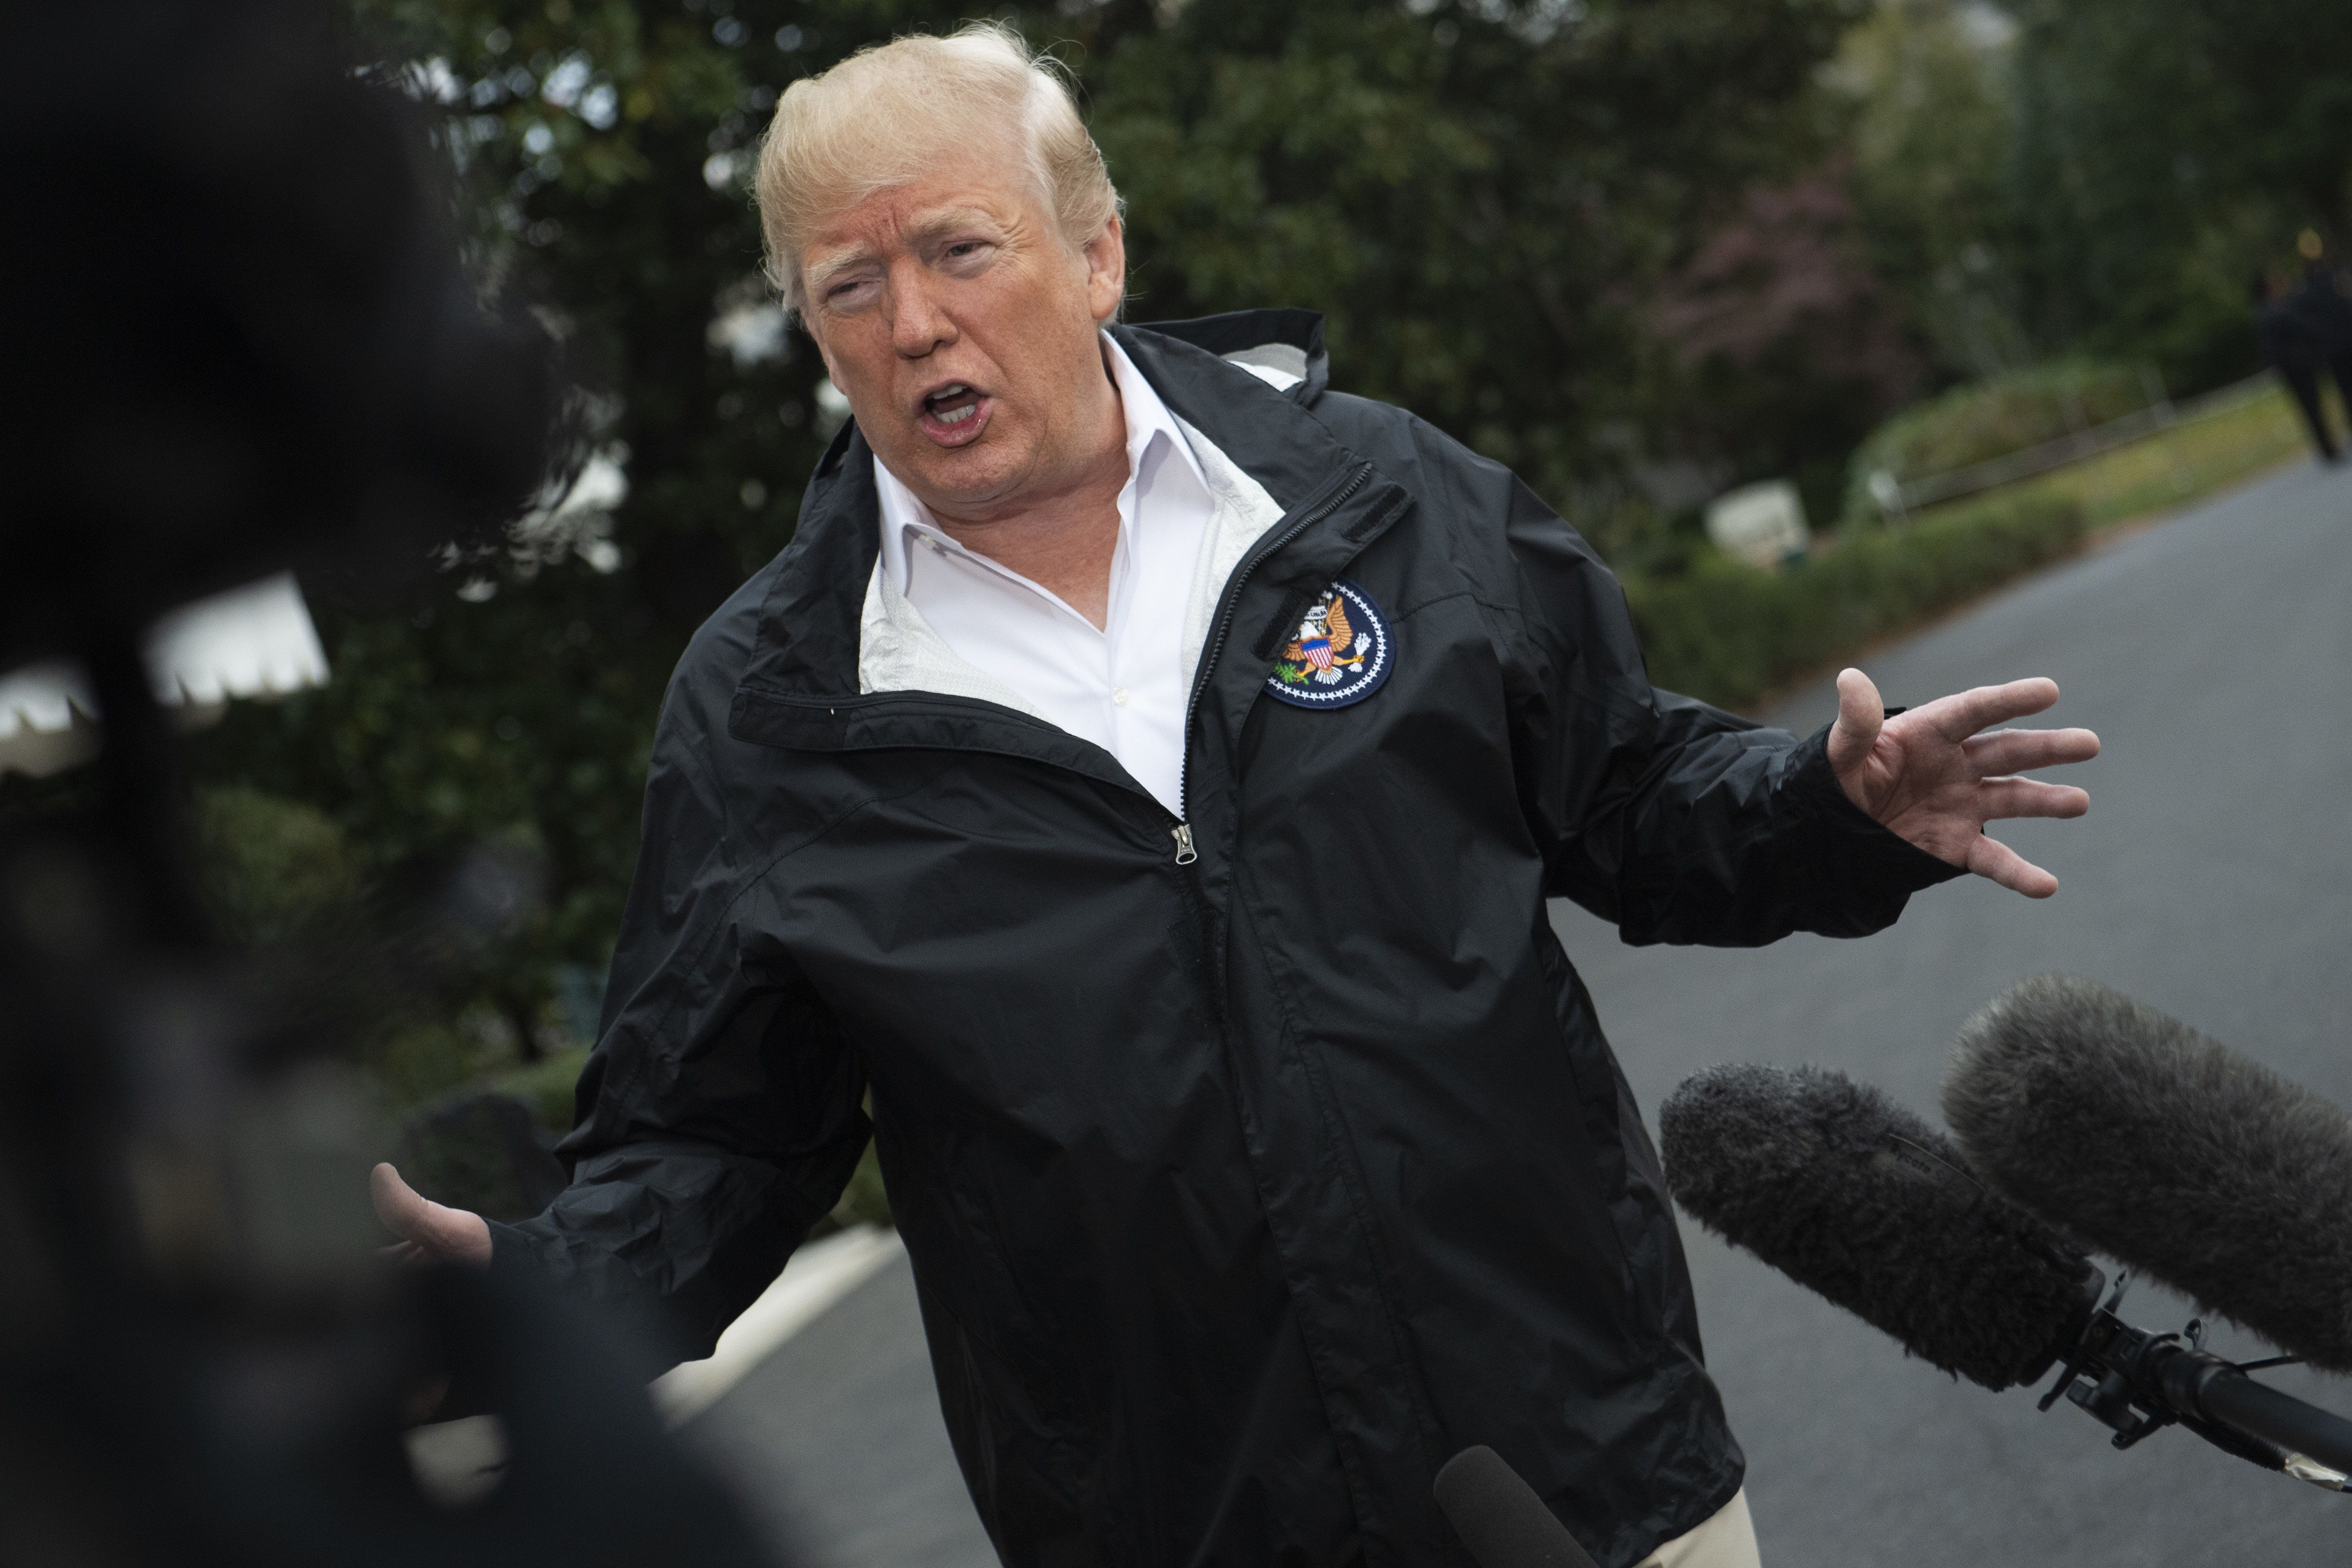 US President Donald Trump talks to the press as he leaves the White House in Washington, DC, for California to visit the Camp Fire disaster area on November 17, 2018. - President Donald Trump was to arrive on November 17 in California where more than 1,000 people are listed missing in the worst-ever wildfire to hit the wealthiest US state, which is at the forefront of resistance to Trump's environmental and other policies. The deadliest and most destructive wildfire in California's history, the so-called Camp Fire, has now claimed 71 lives after authorities found eight additional sets of human remains. (Photo by Eric BARADAT / AFP)        (Photo credit should read ERIC BARADAT/AFP/Getty Images)